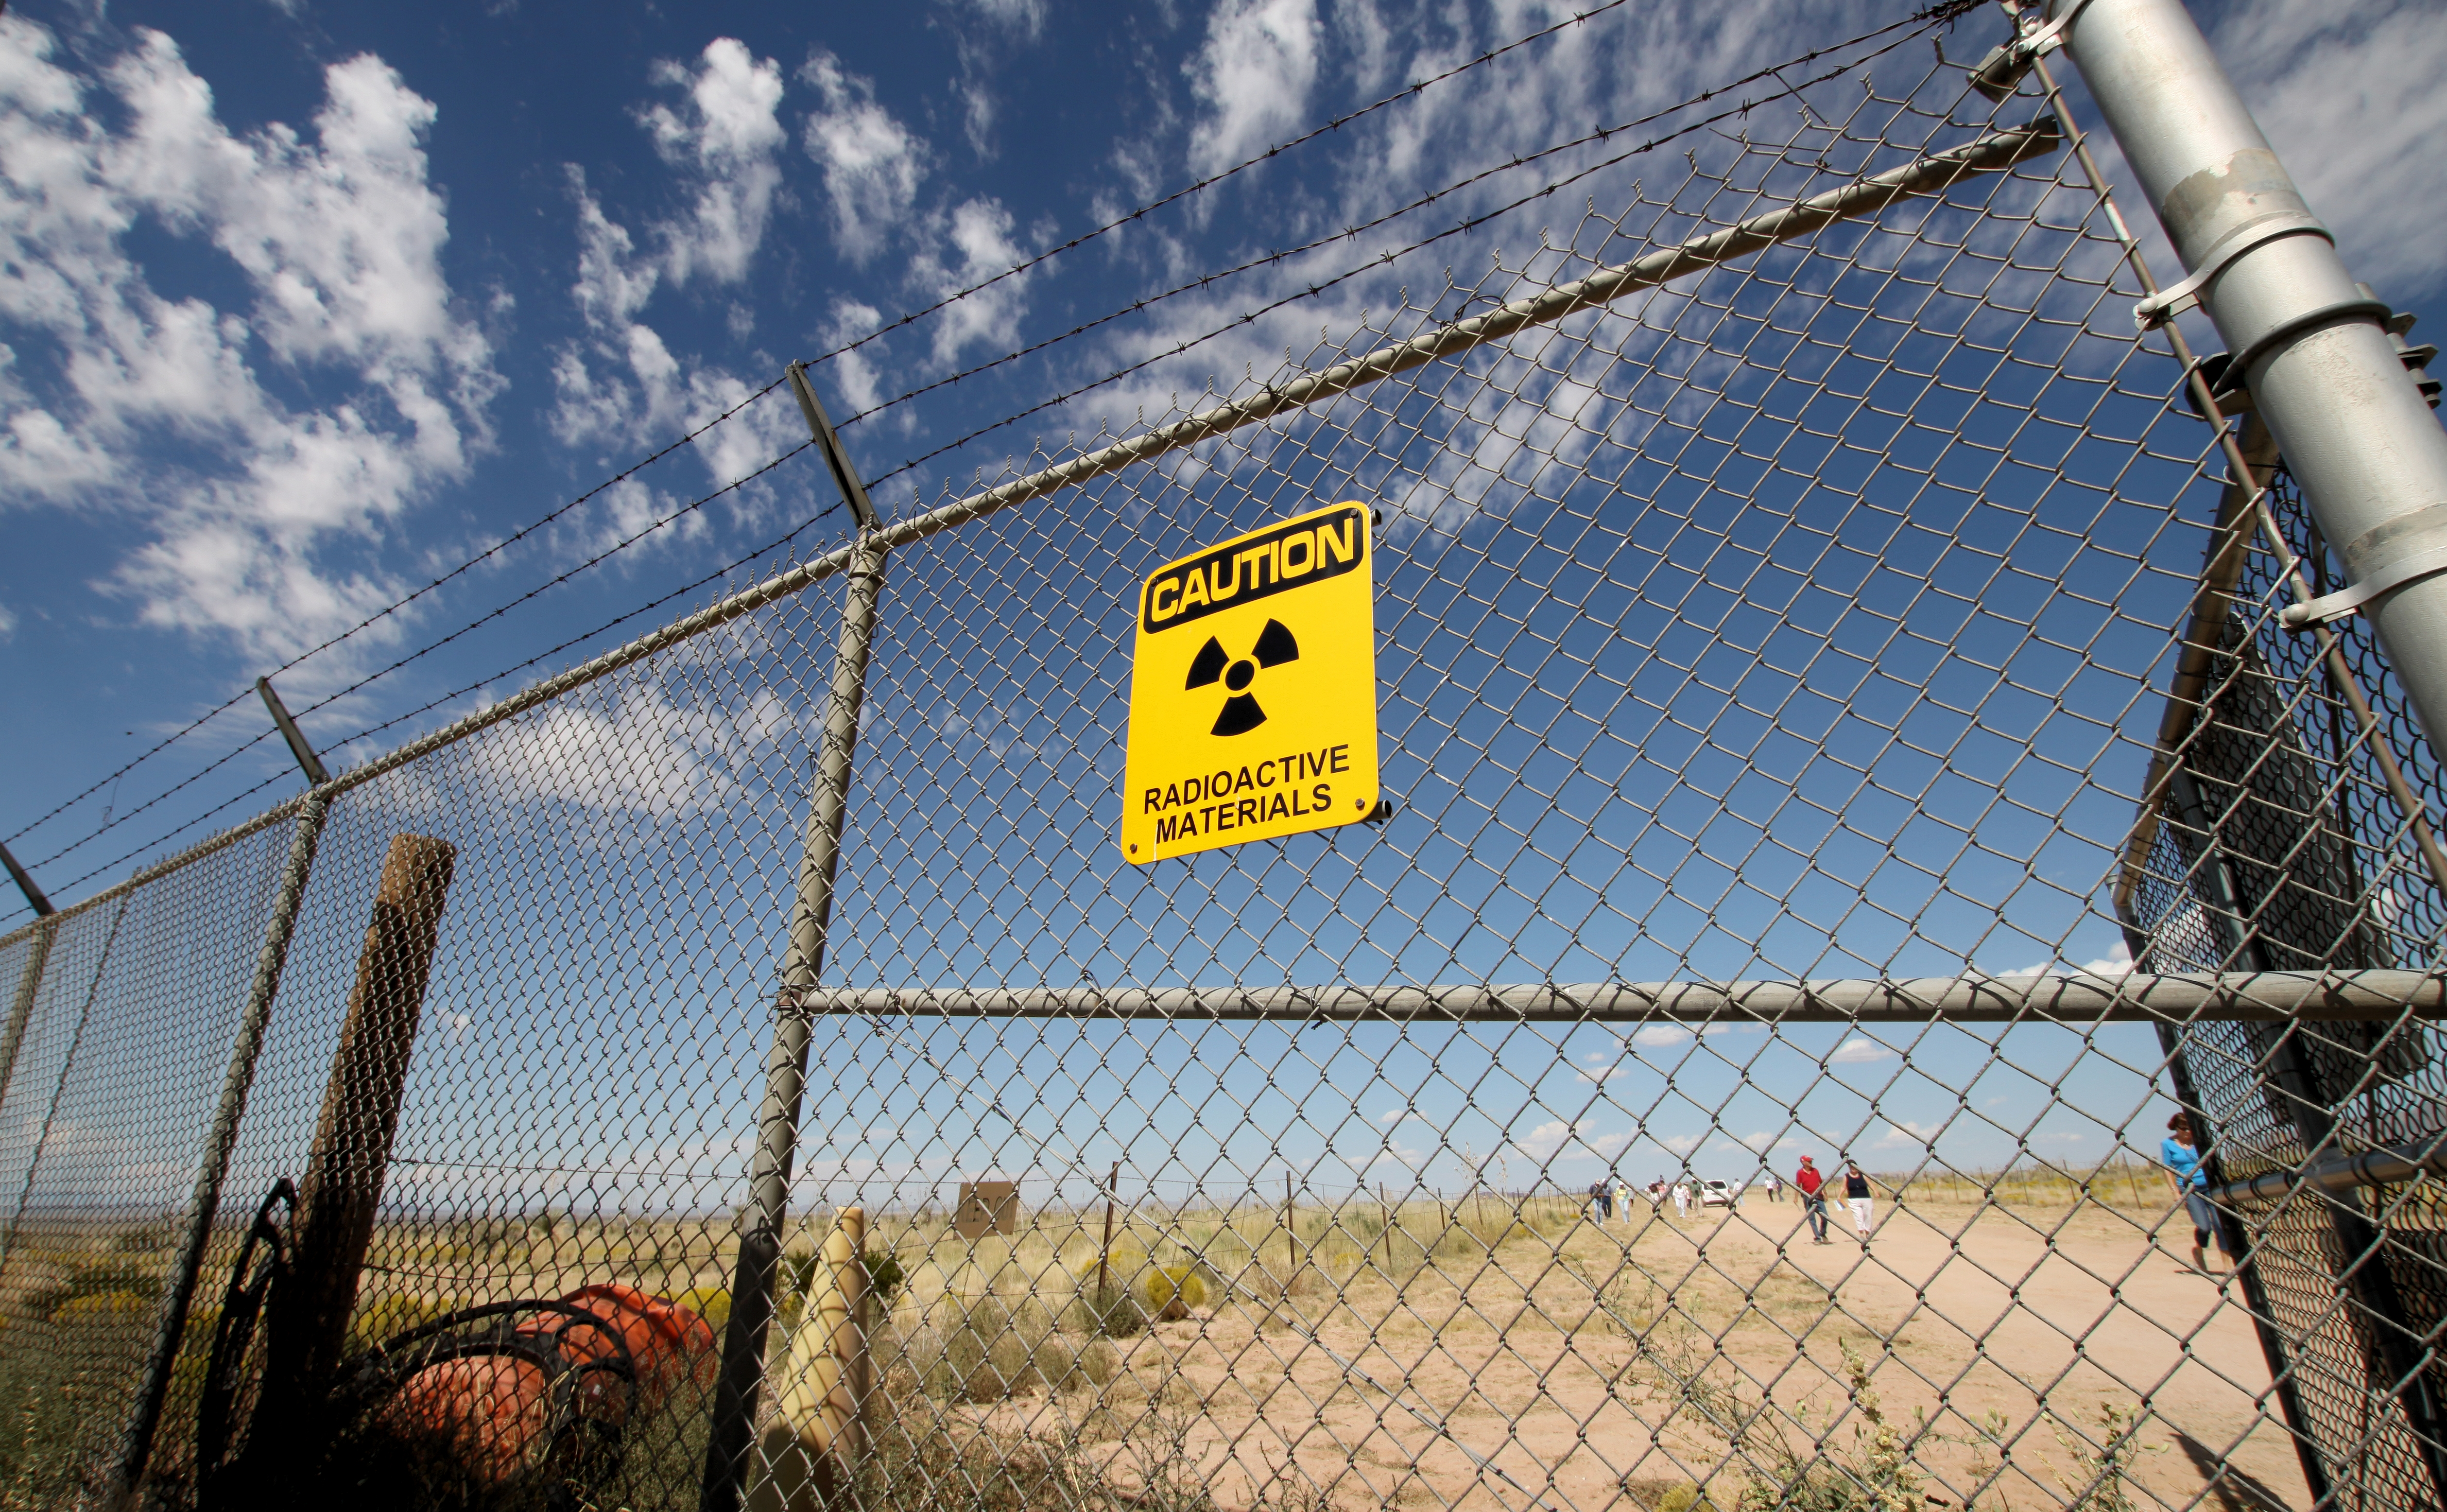 Radioactive city: how Johannesburg's townships are paying